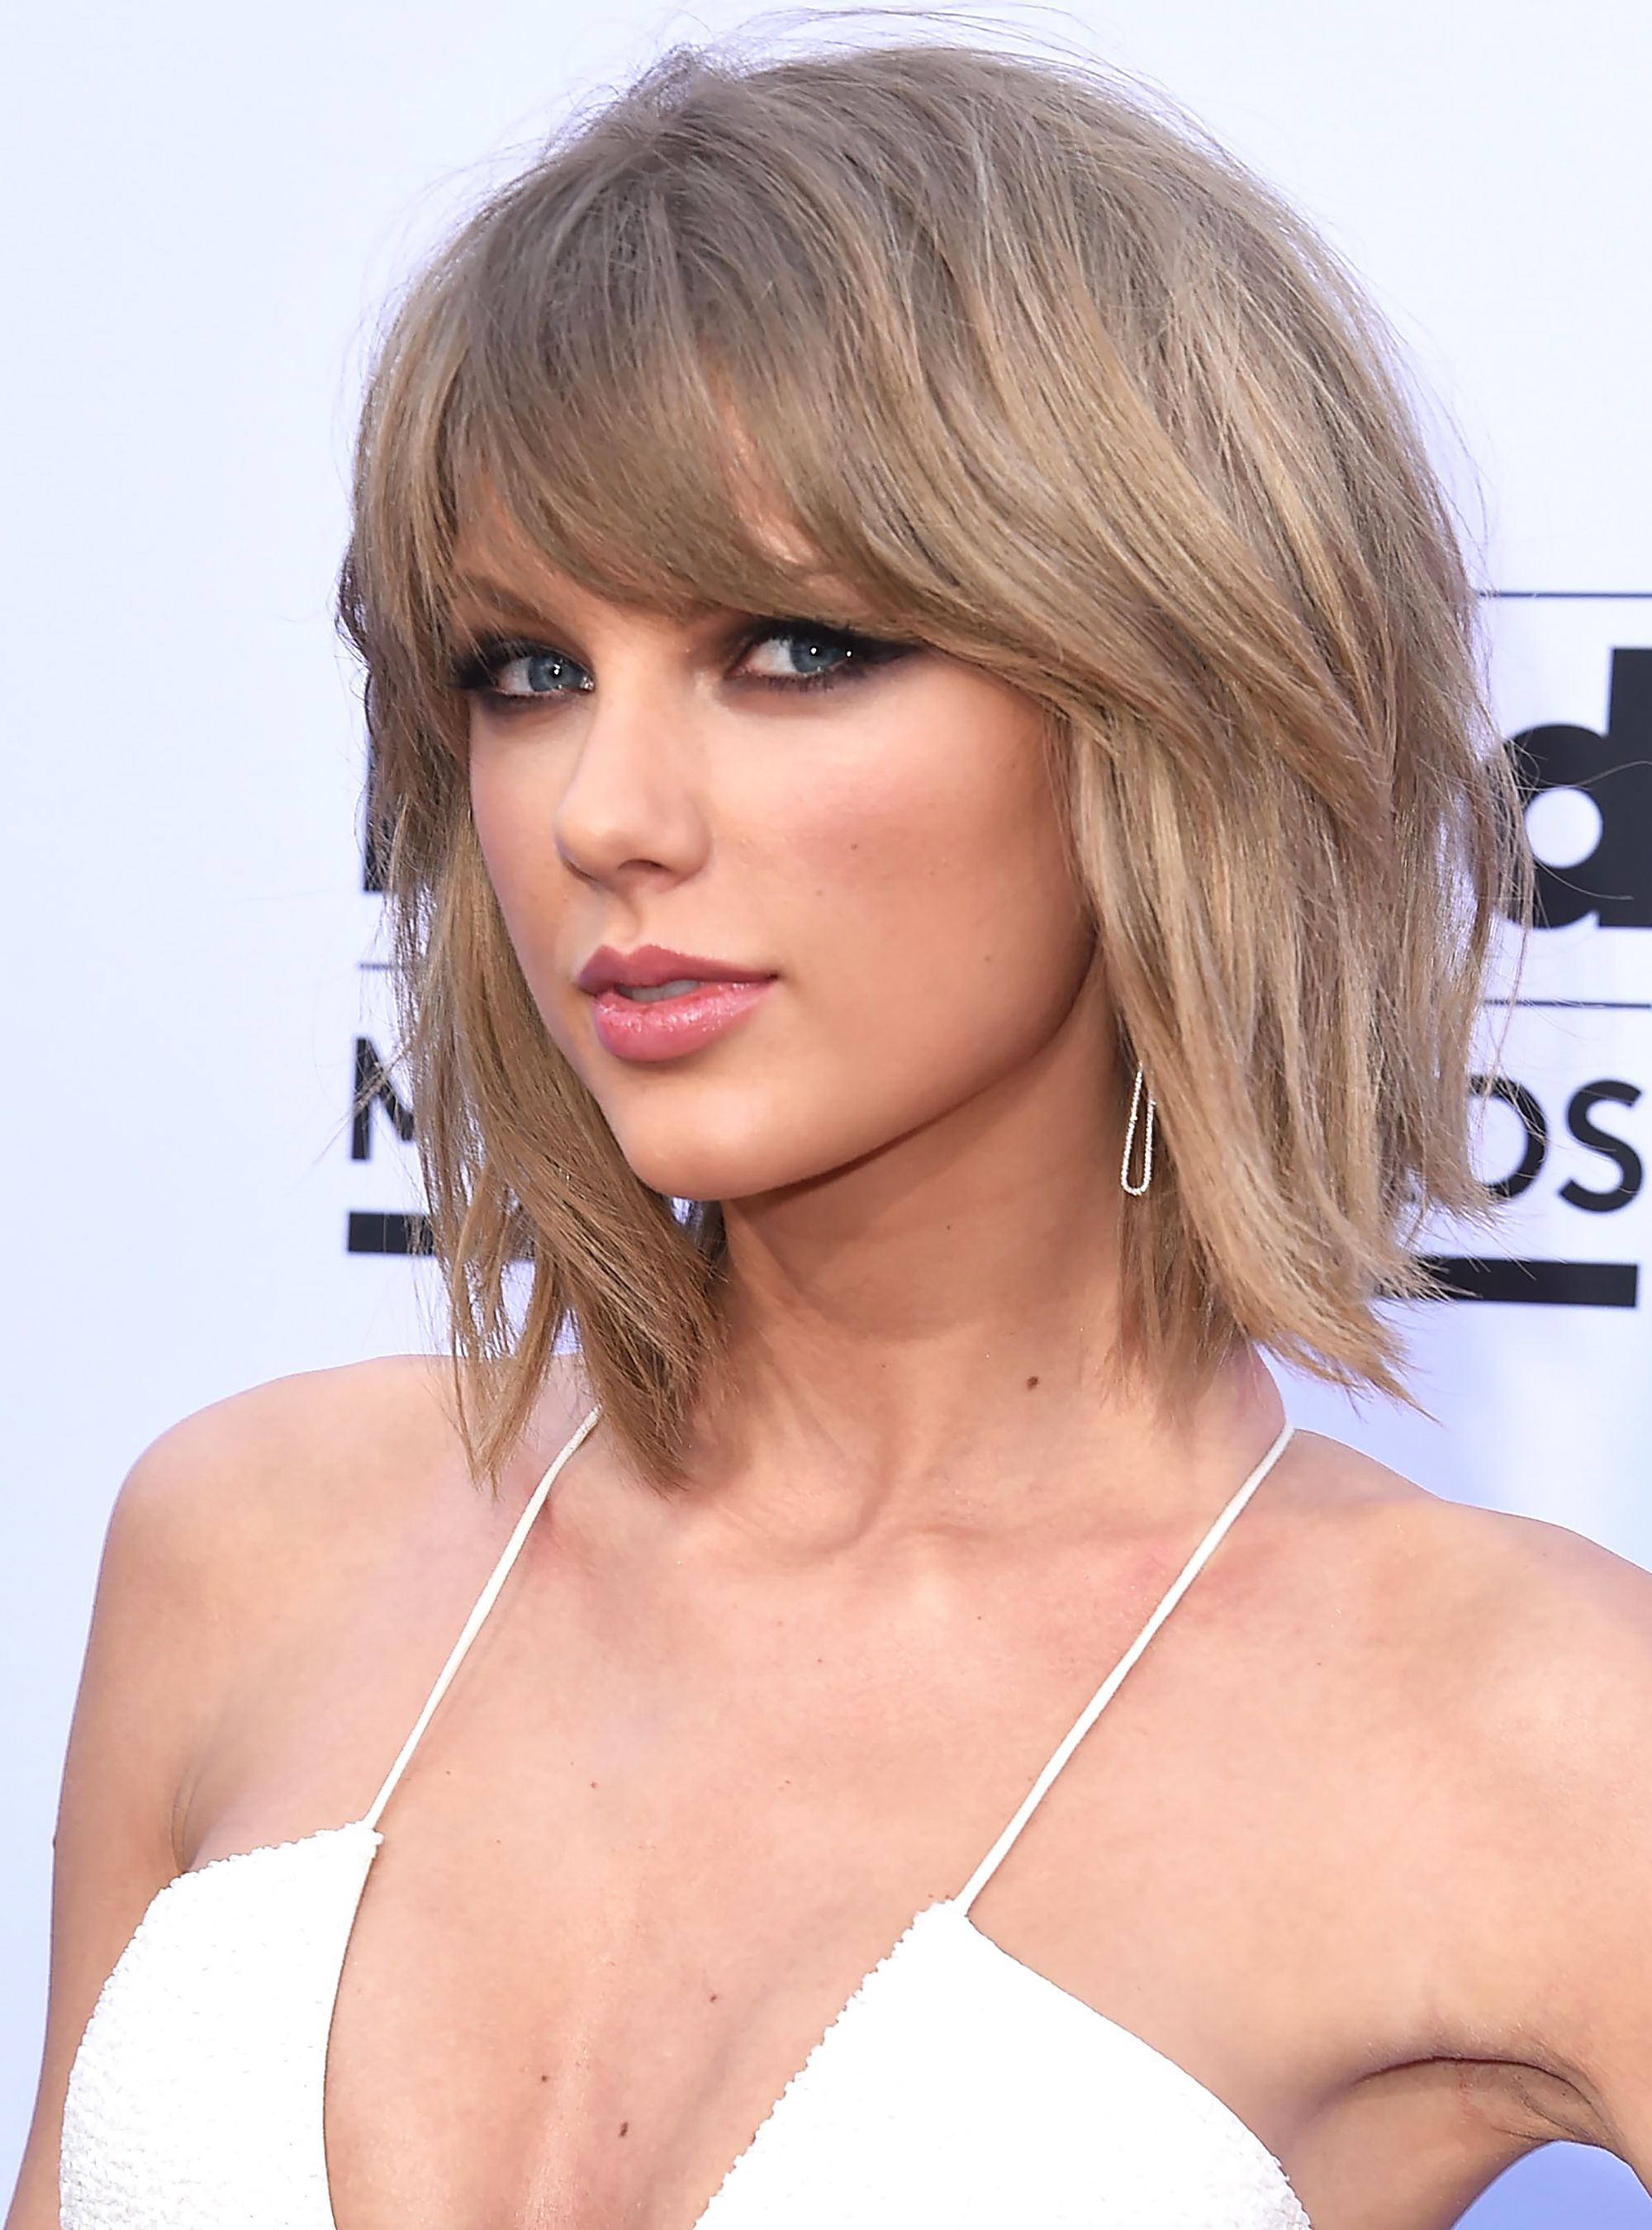 The Best Celebrity Shag Haircuts Taylor Swift Hair Taylor Swift Haircut Taylor Swift Hot